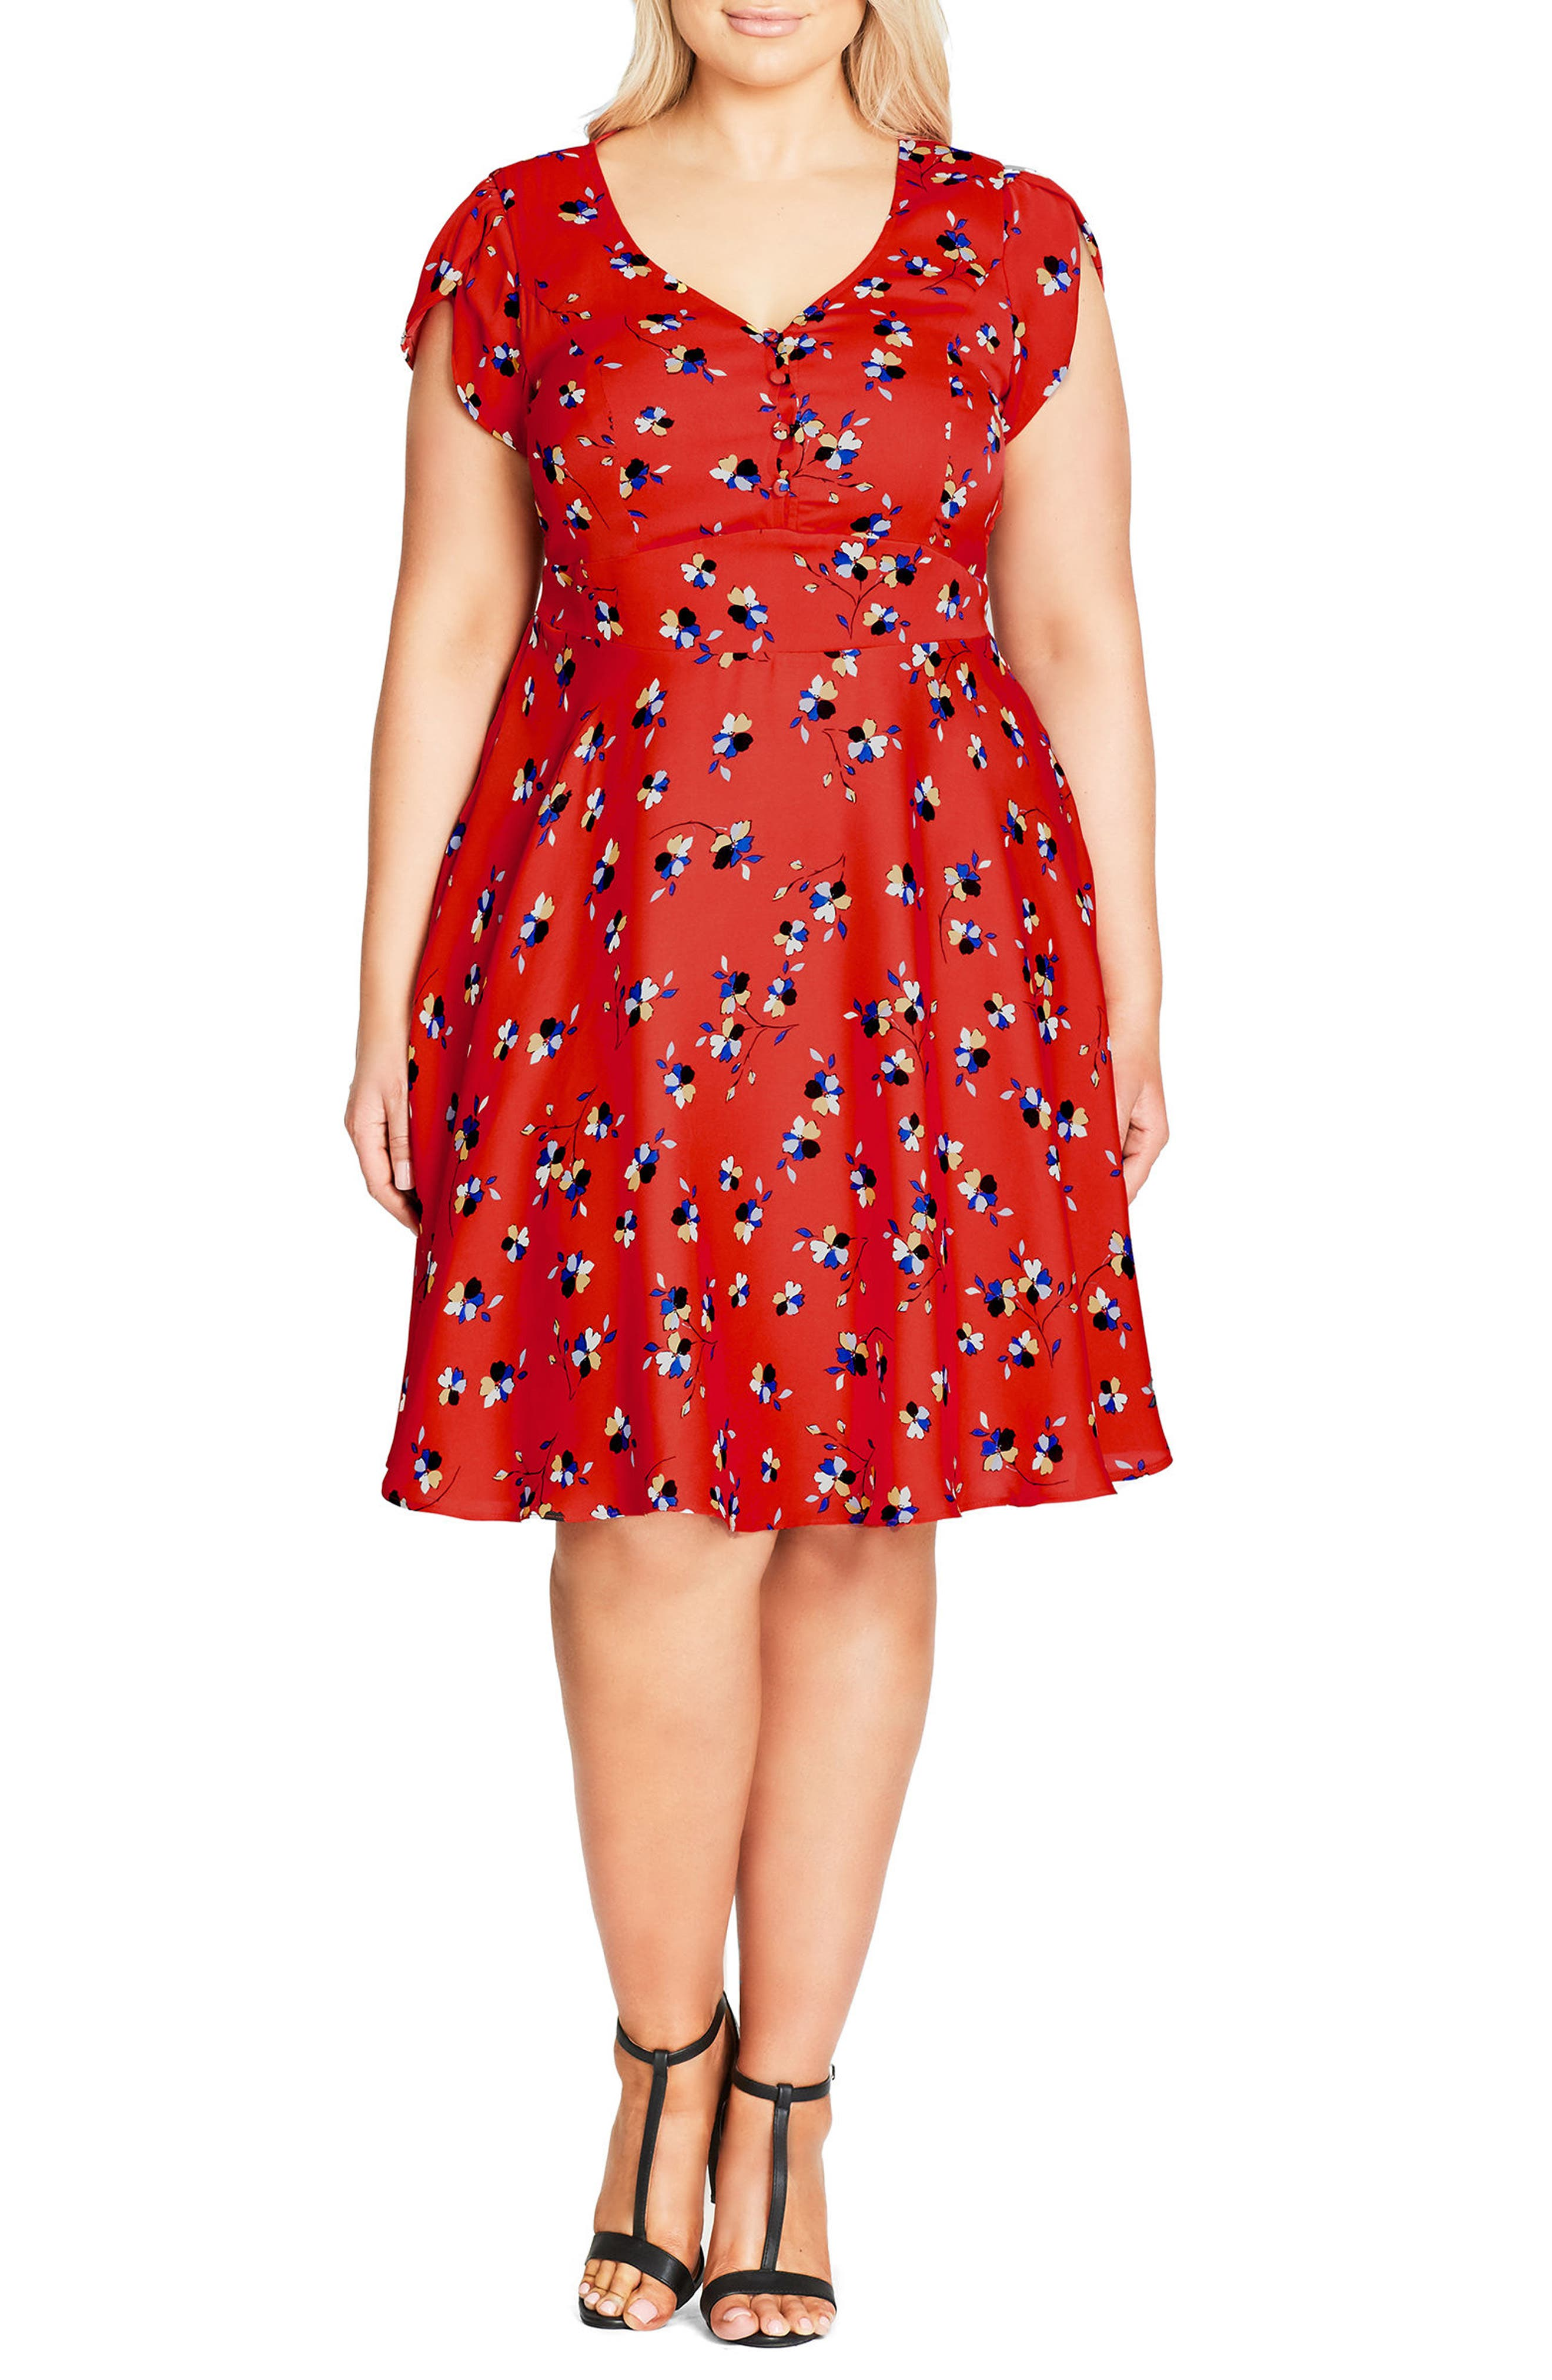 Cutie Pie Fit & Flare Dress,                             Main thumbnail 1, color,                             600